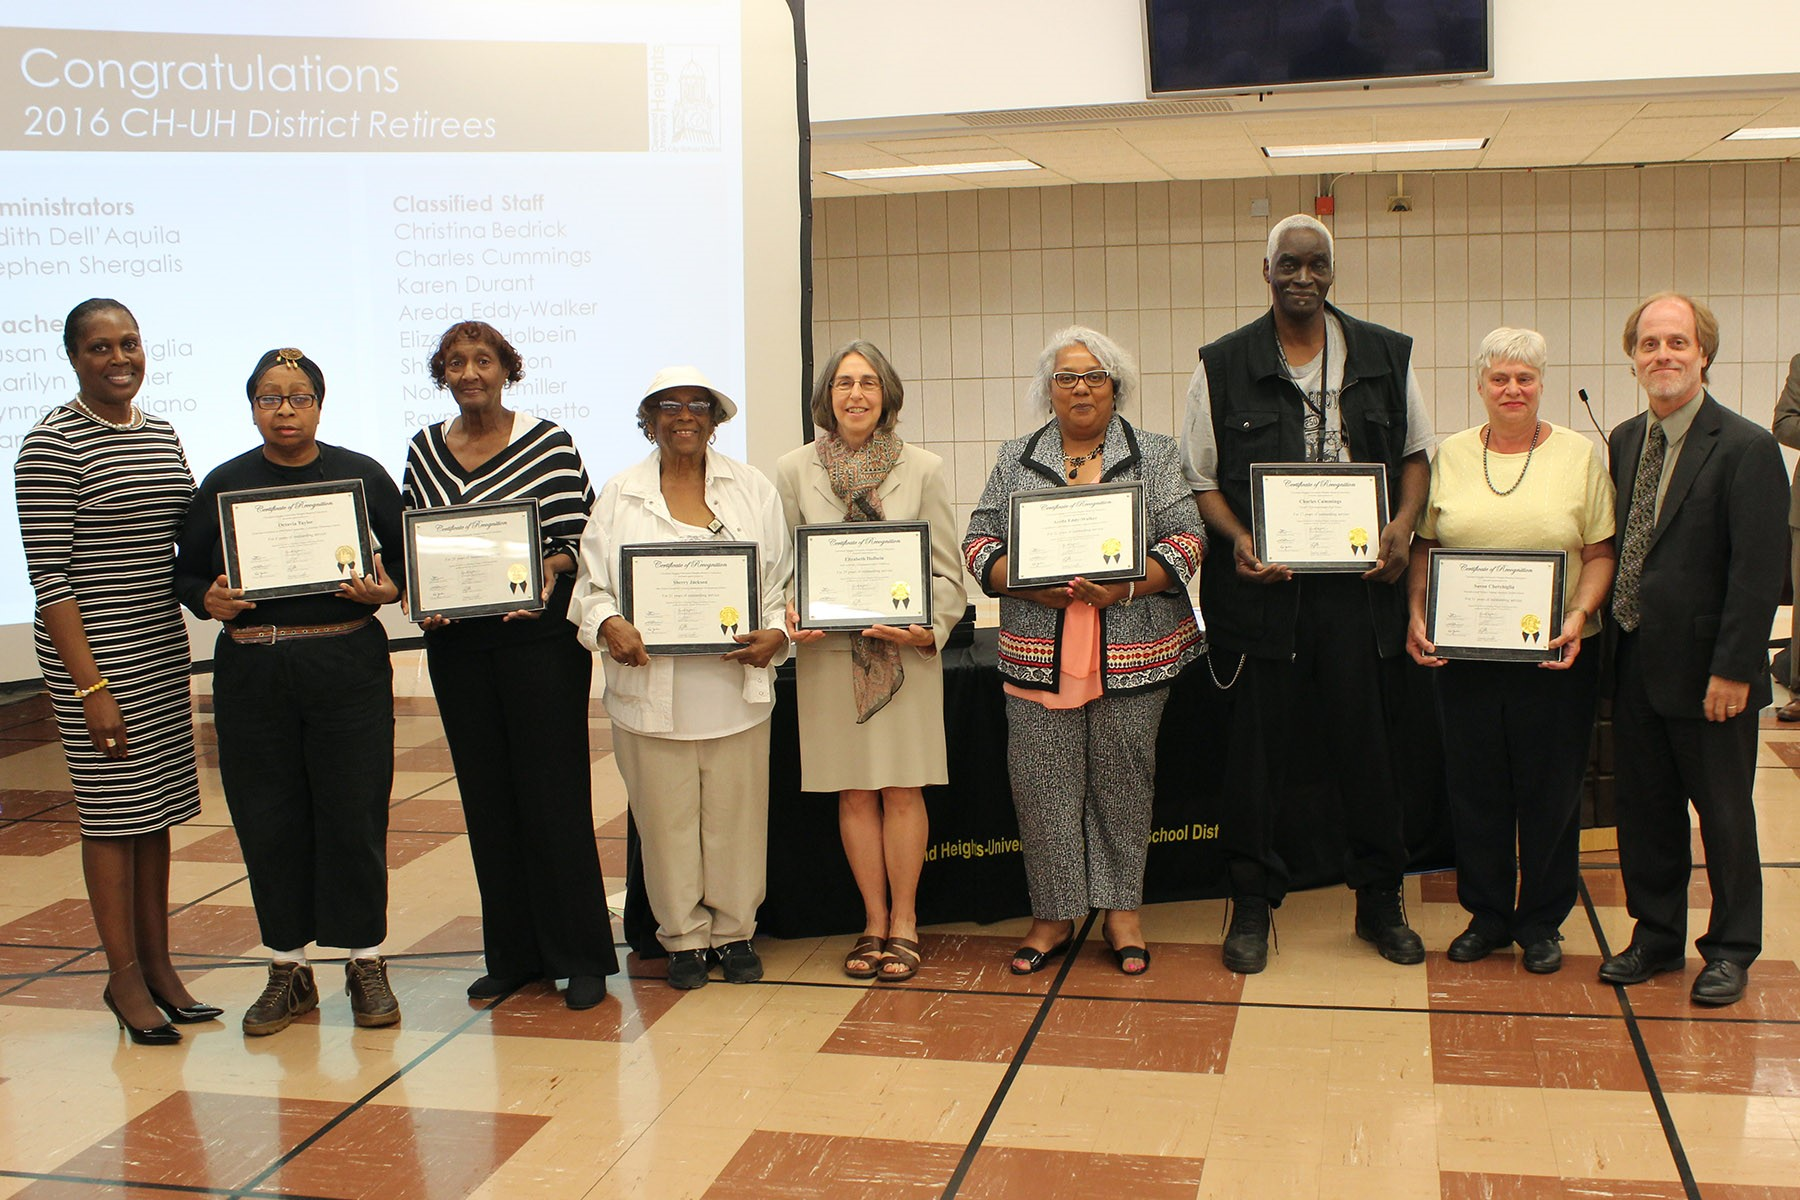 Retiring staff members from the CHUH District were honored.